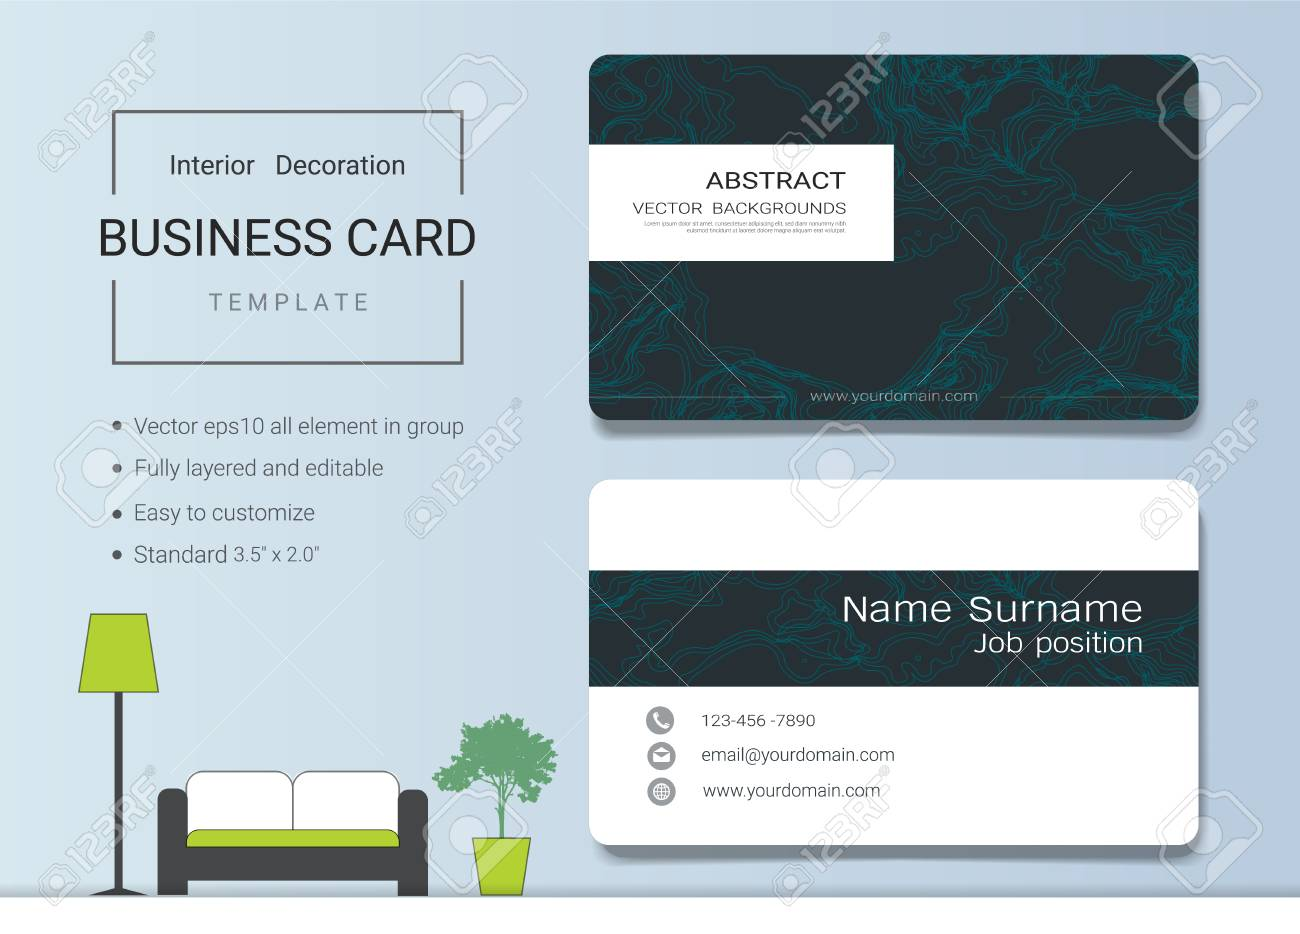 Business card or name card template for interior designer. Modern..